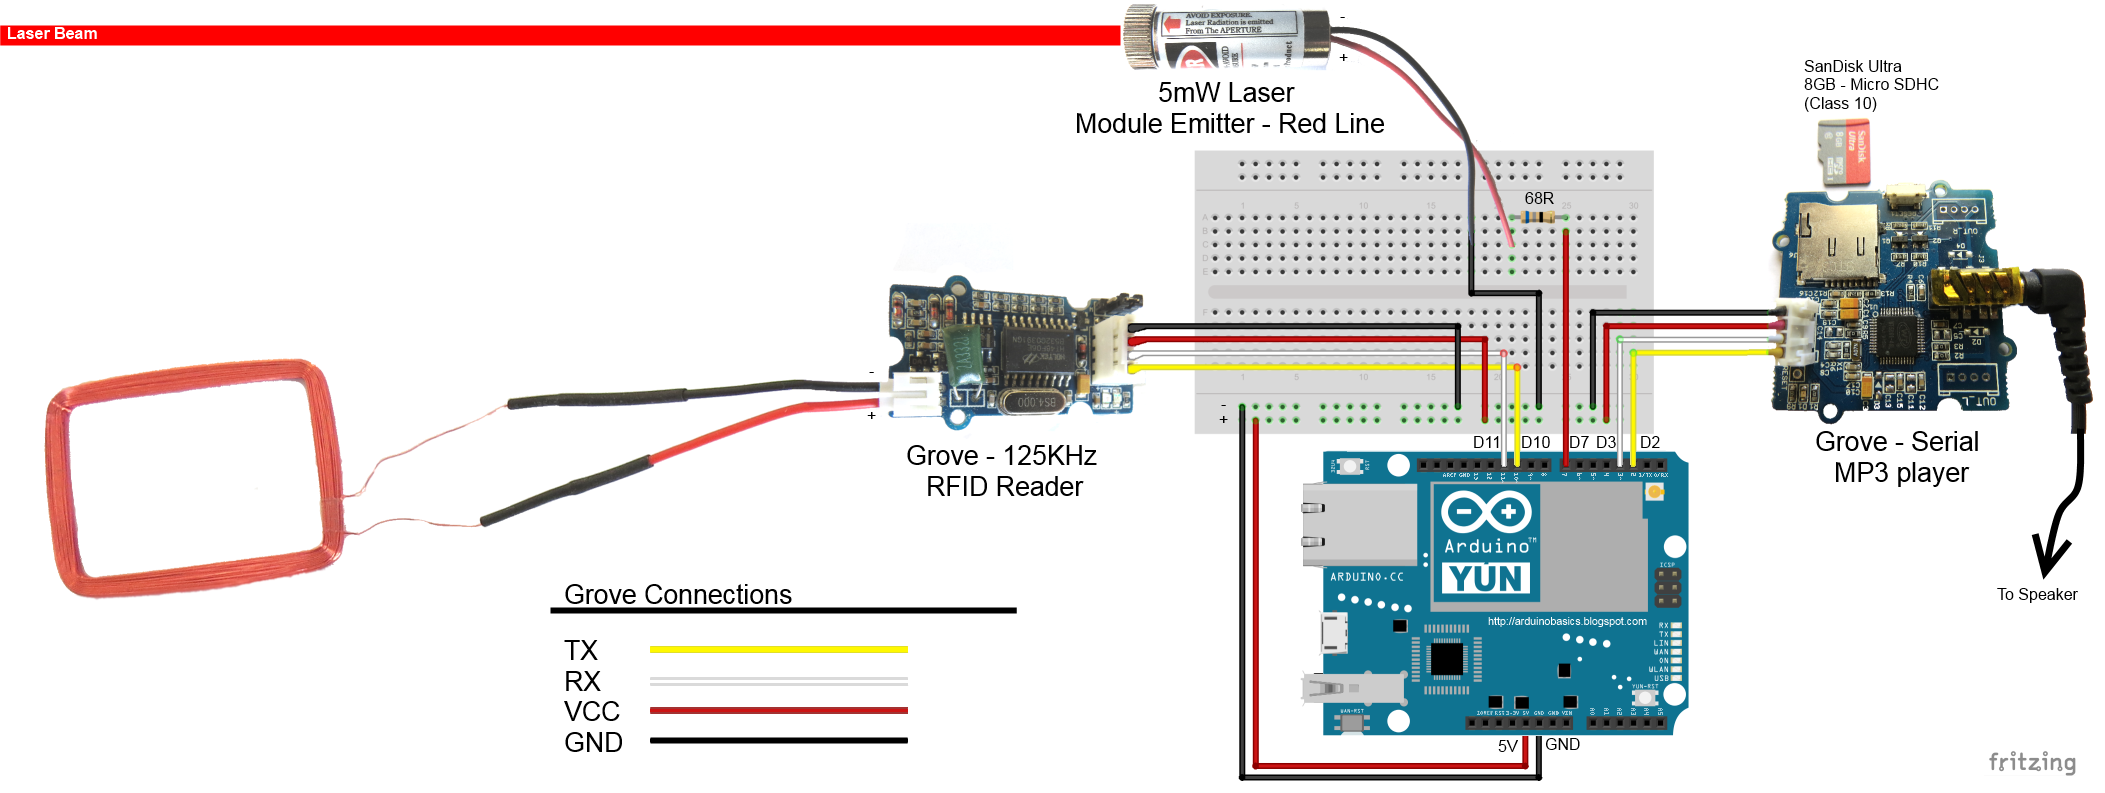 Arduino Based Security Project Using Cayenne Pin Pir Sensor Circuit On Pinterest Yun Mp3 Rfid Laser With20parts7